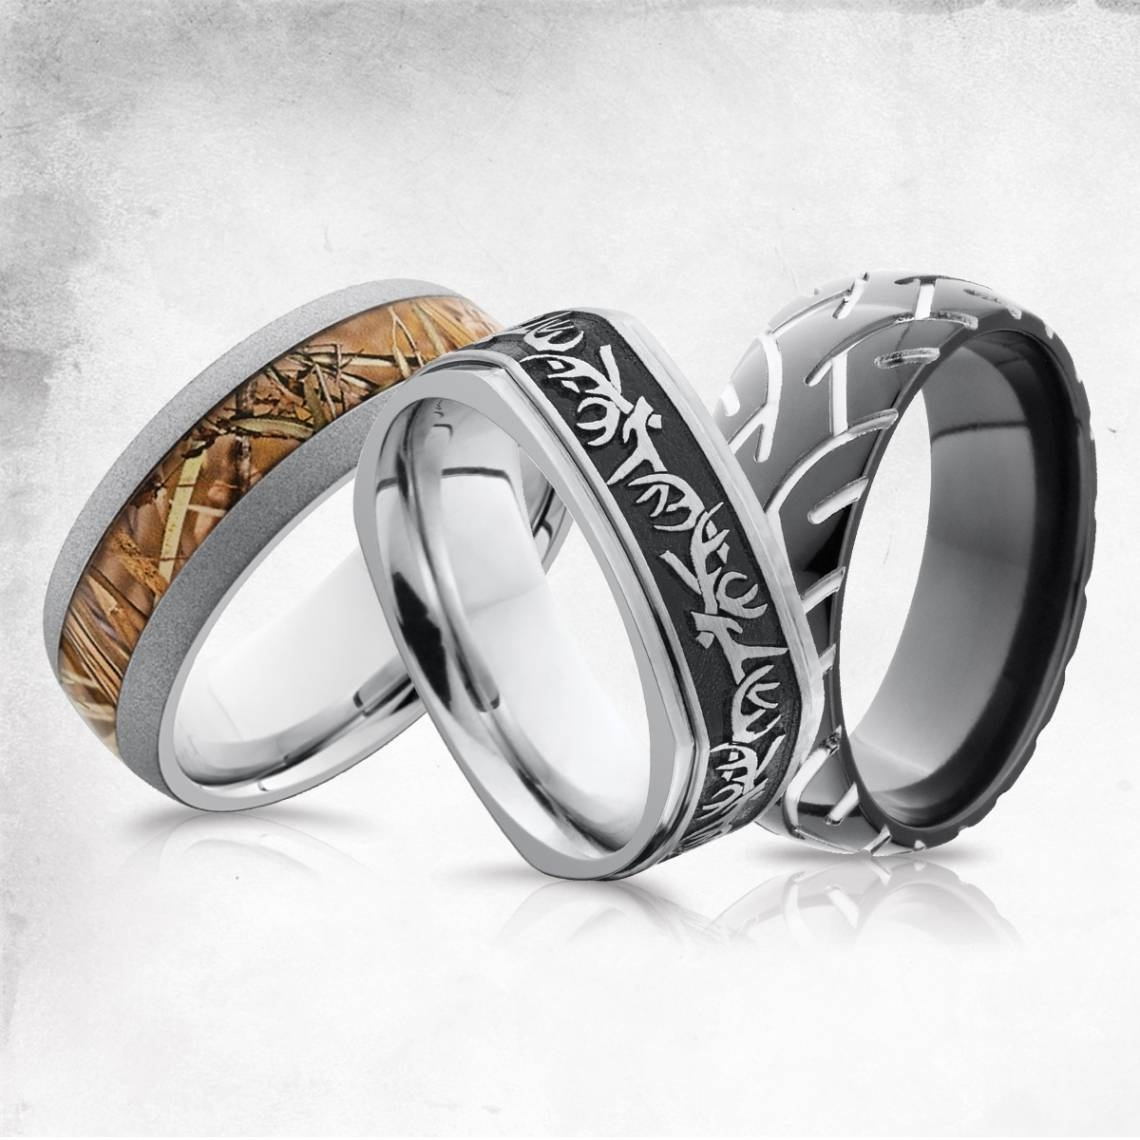 Hunting, Camo, And Tire Tracks Men's Wedding Bands – Men's Wedding With Regard To Outdoorsman Wedding Bands (Gallery 5 of 15)